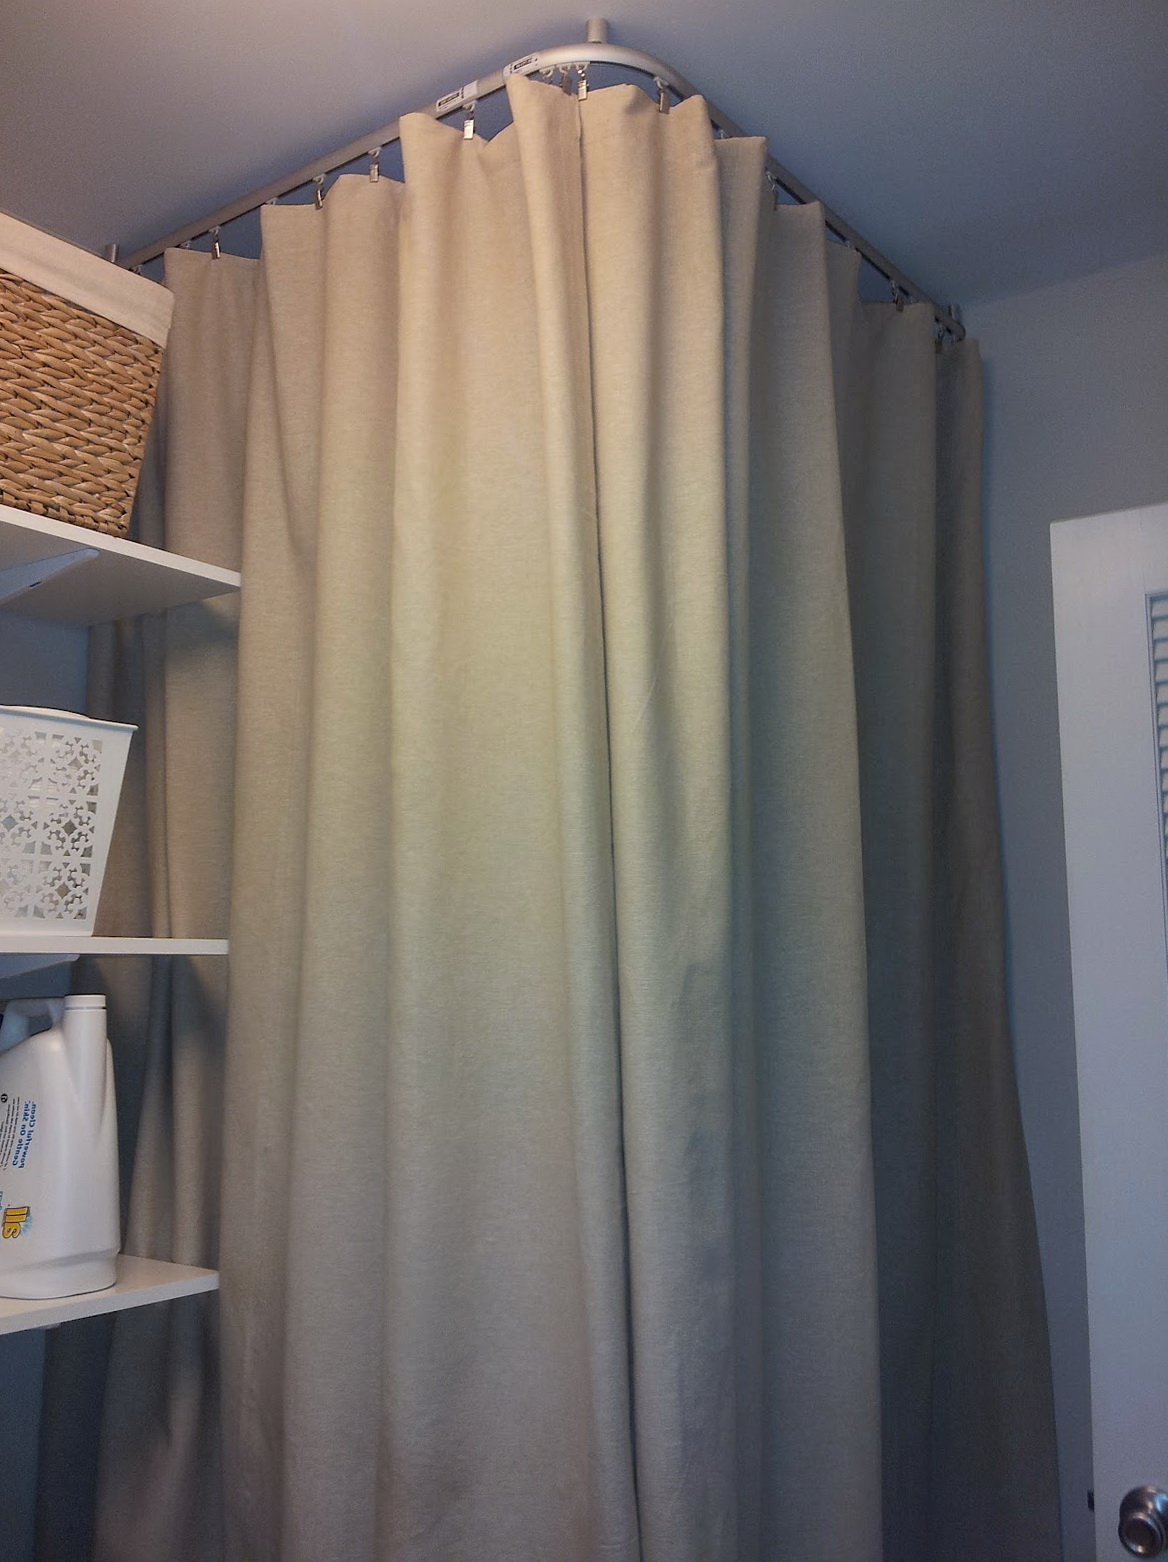 Ceiling Mounted Curtain Tracks Home Depot Home Design Ideas